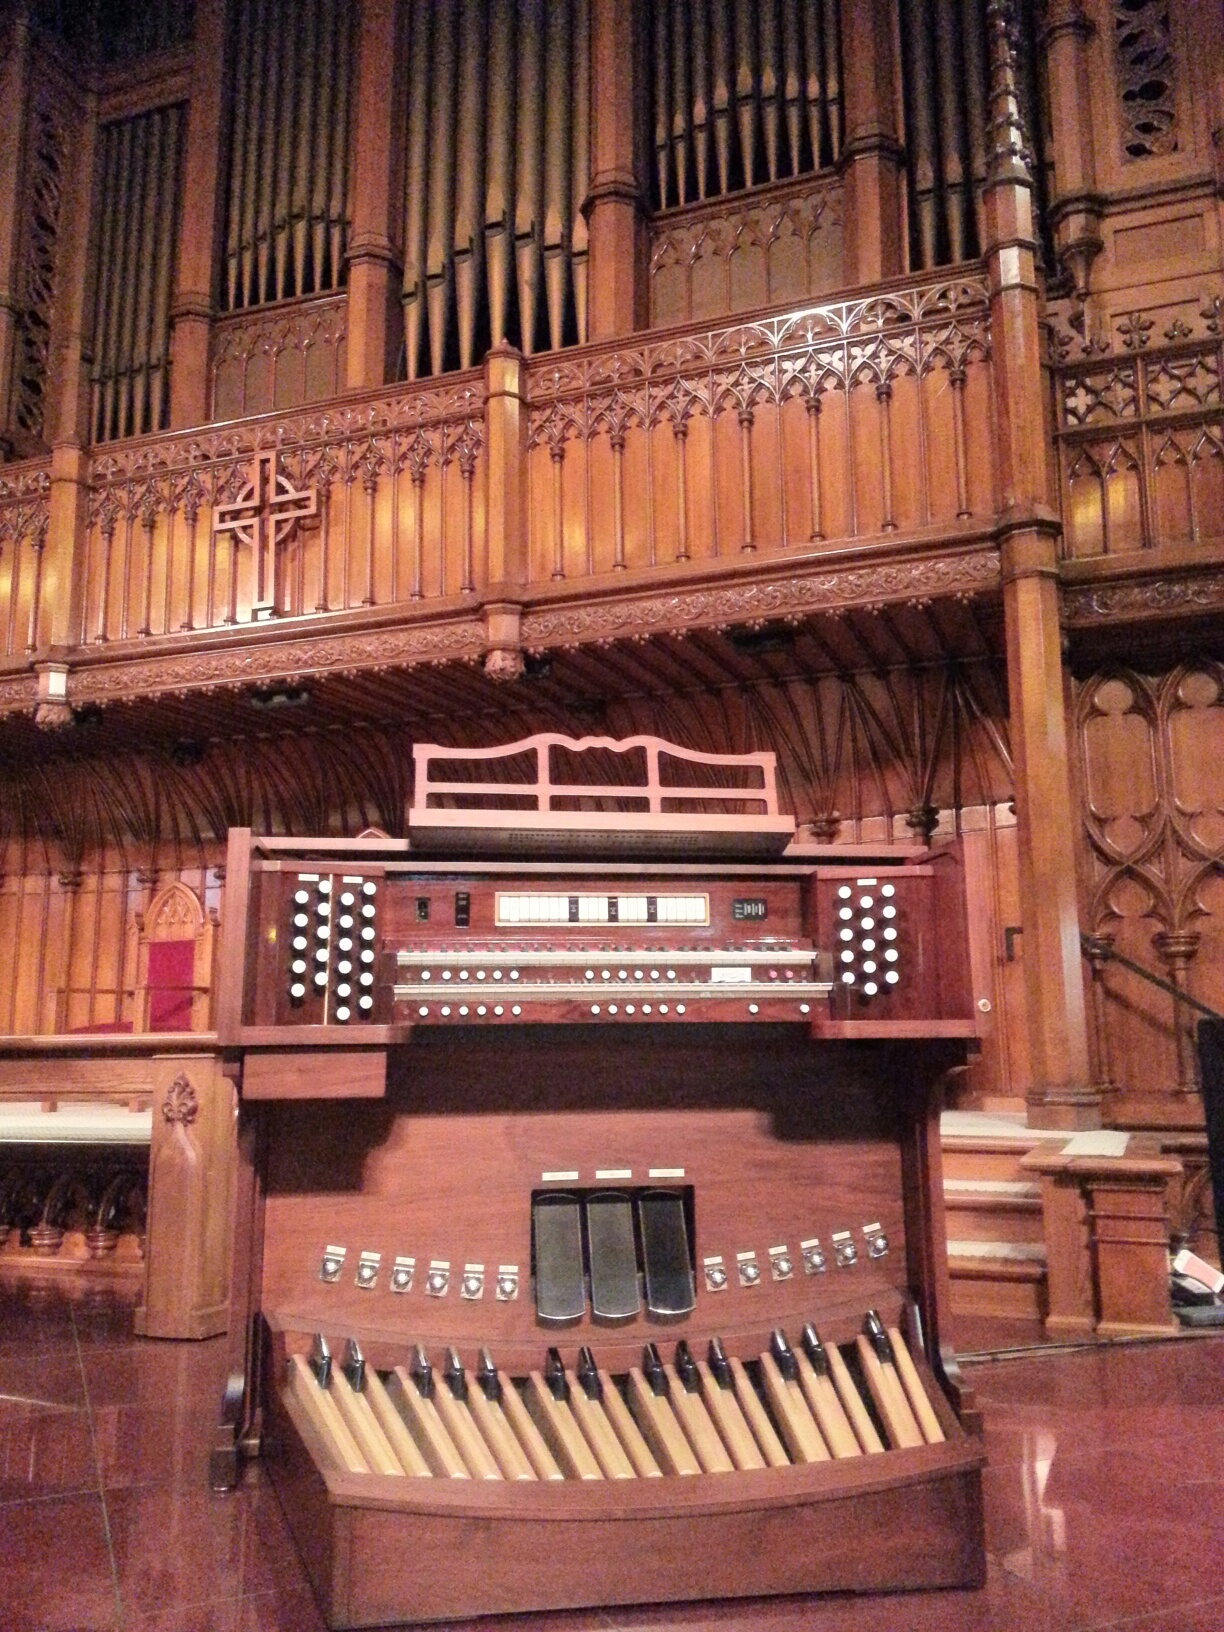 Allen Organs' Diane Bish Series organ at Third Presbyterian Church, Pittsburgh, PA